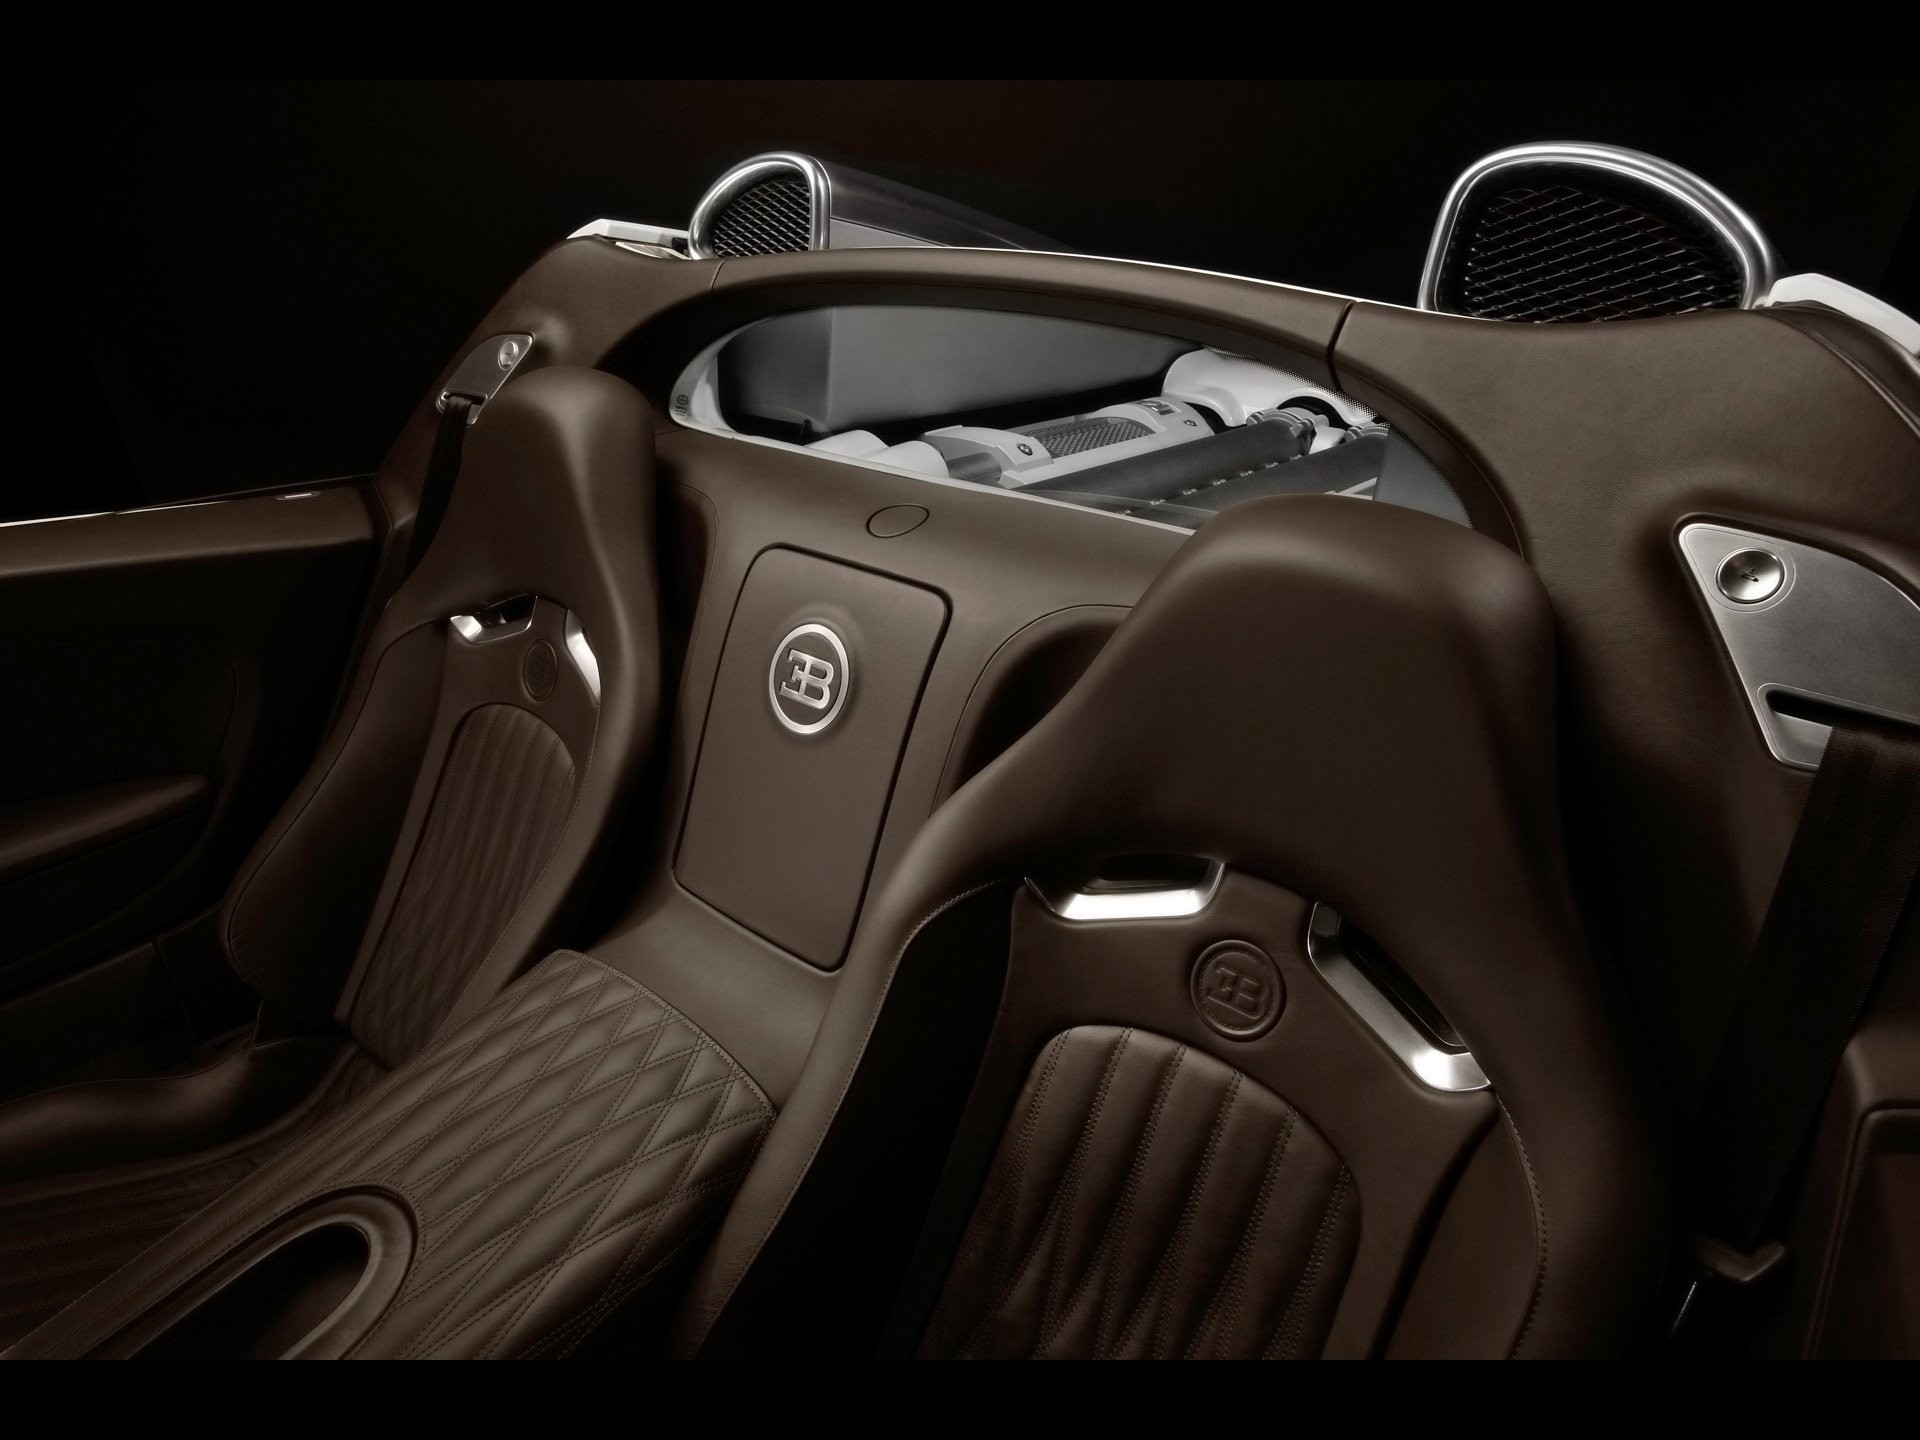 bugatti veyron interior car HD Wallpaper